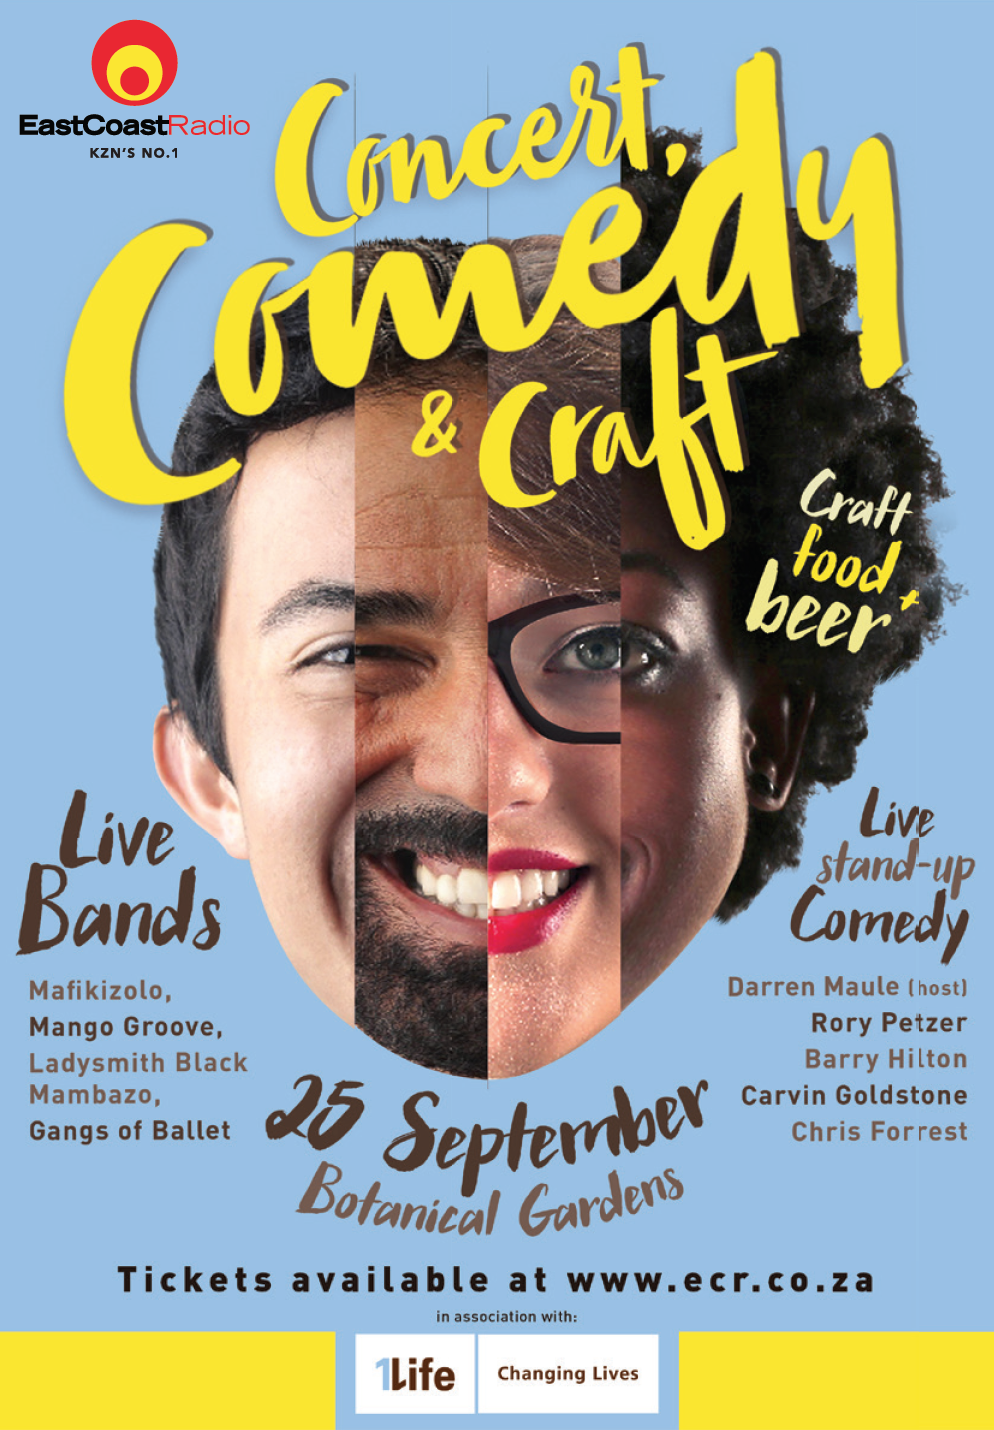 Concert Comedy Craft Breakfast list